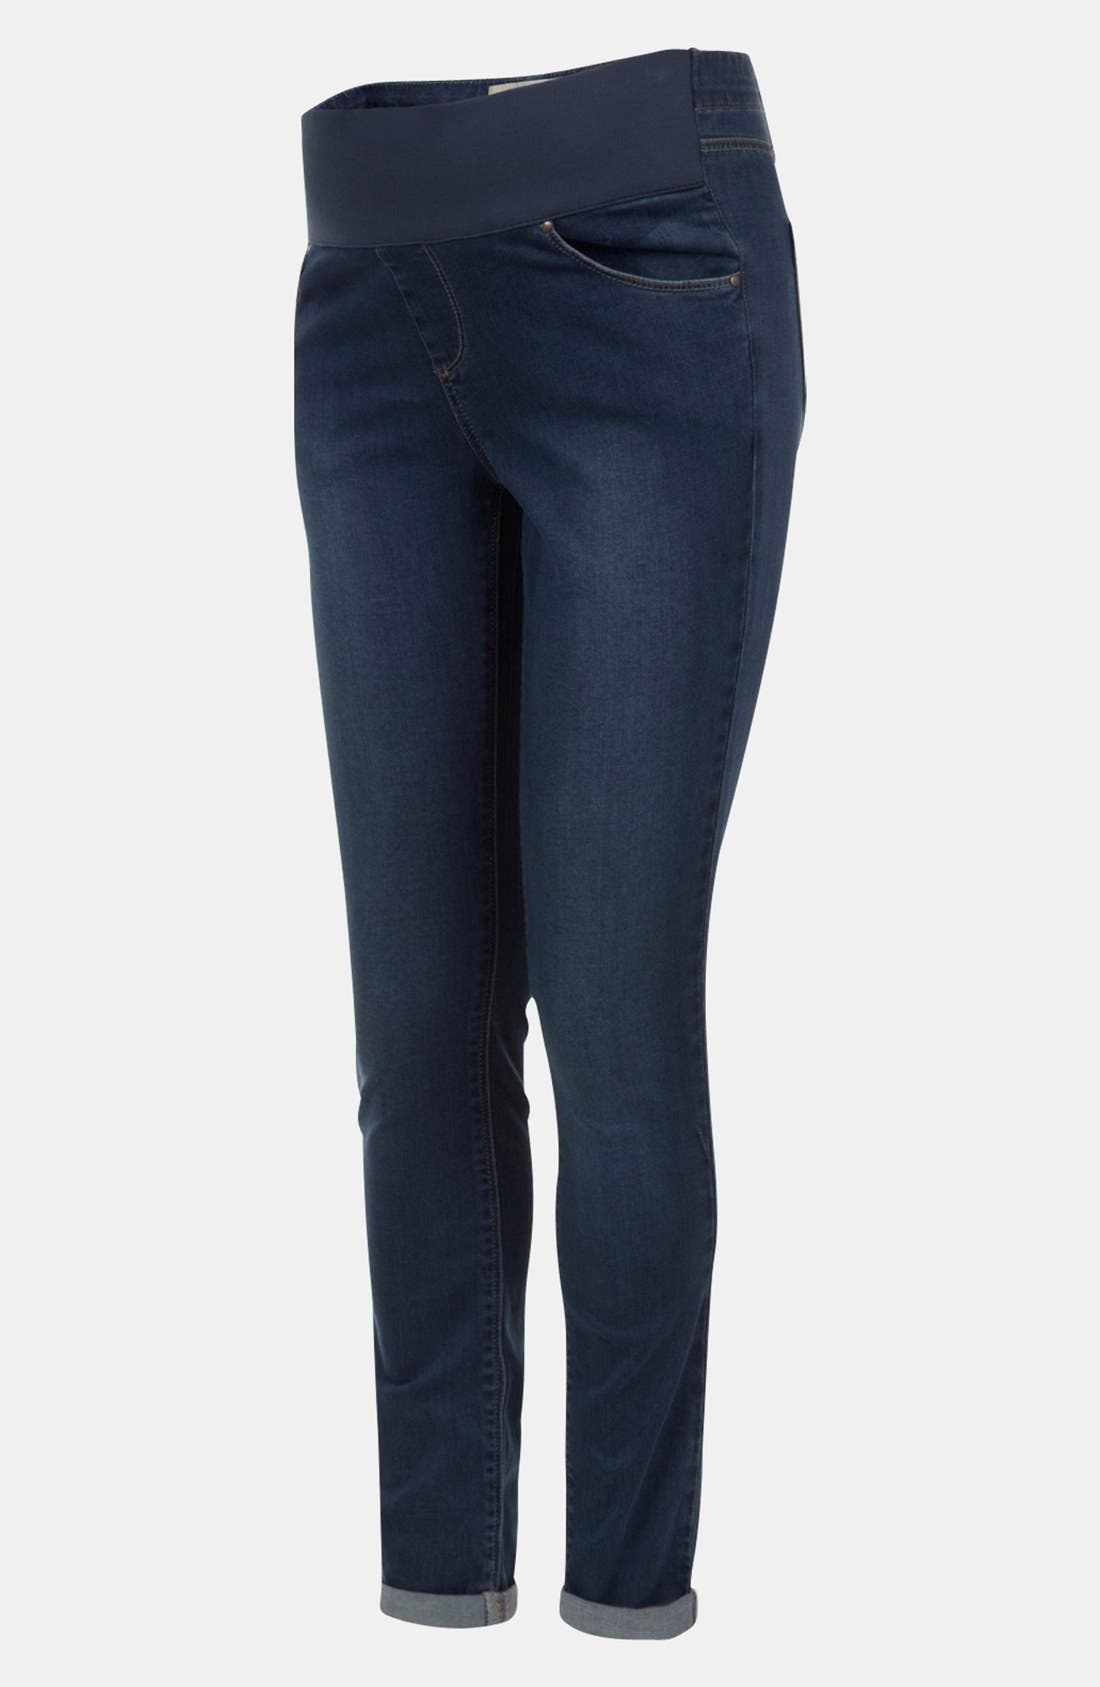 Main Image - Topshop 'Leigh' Maternity Skinny Jeans (Short)